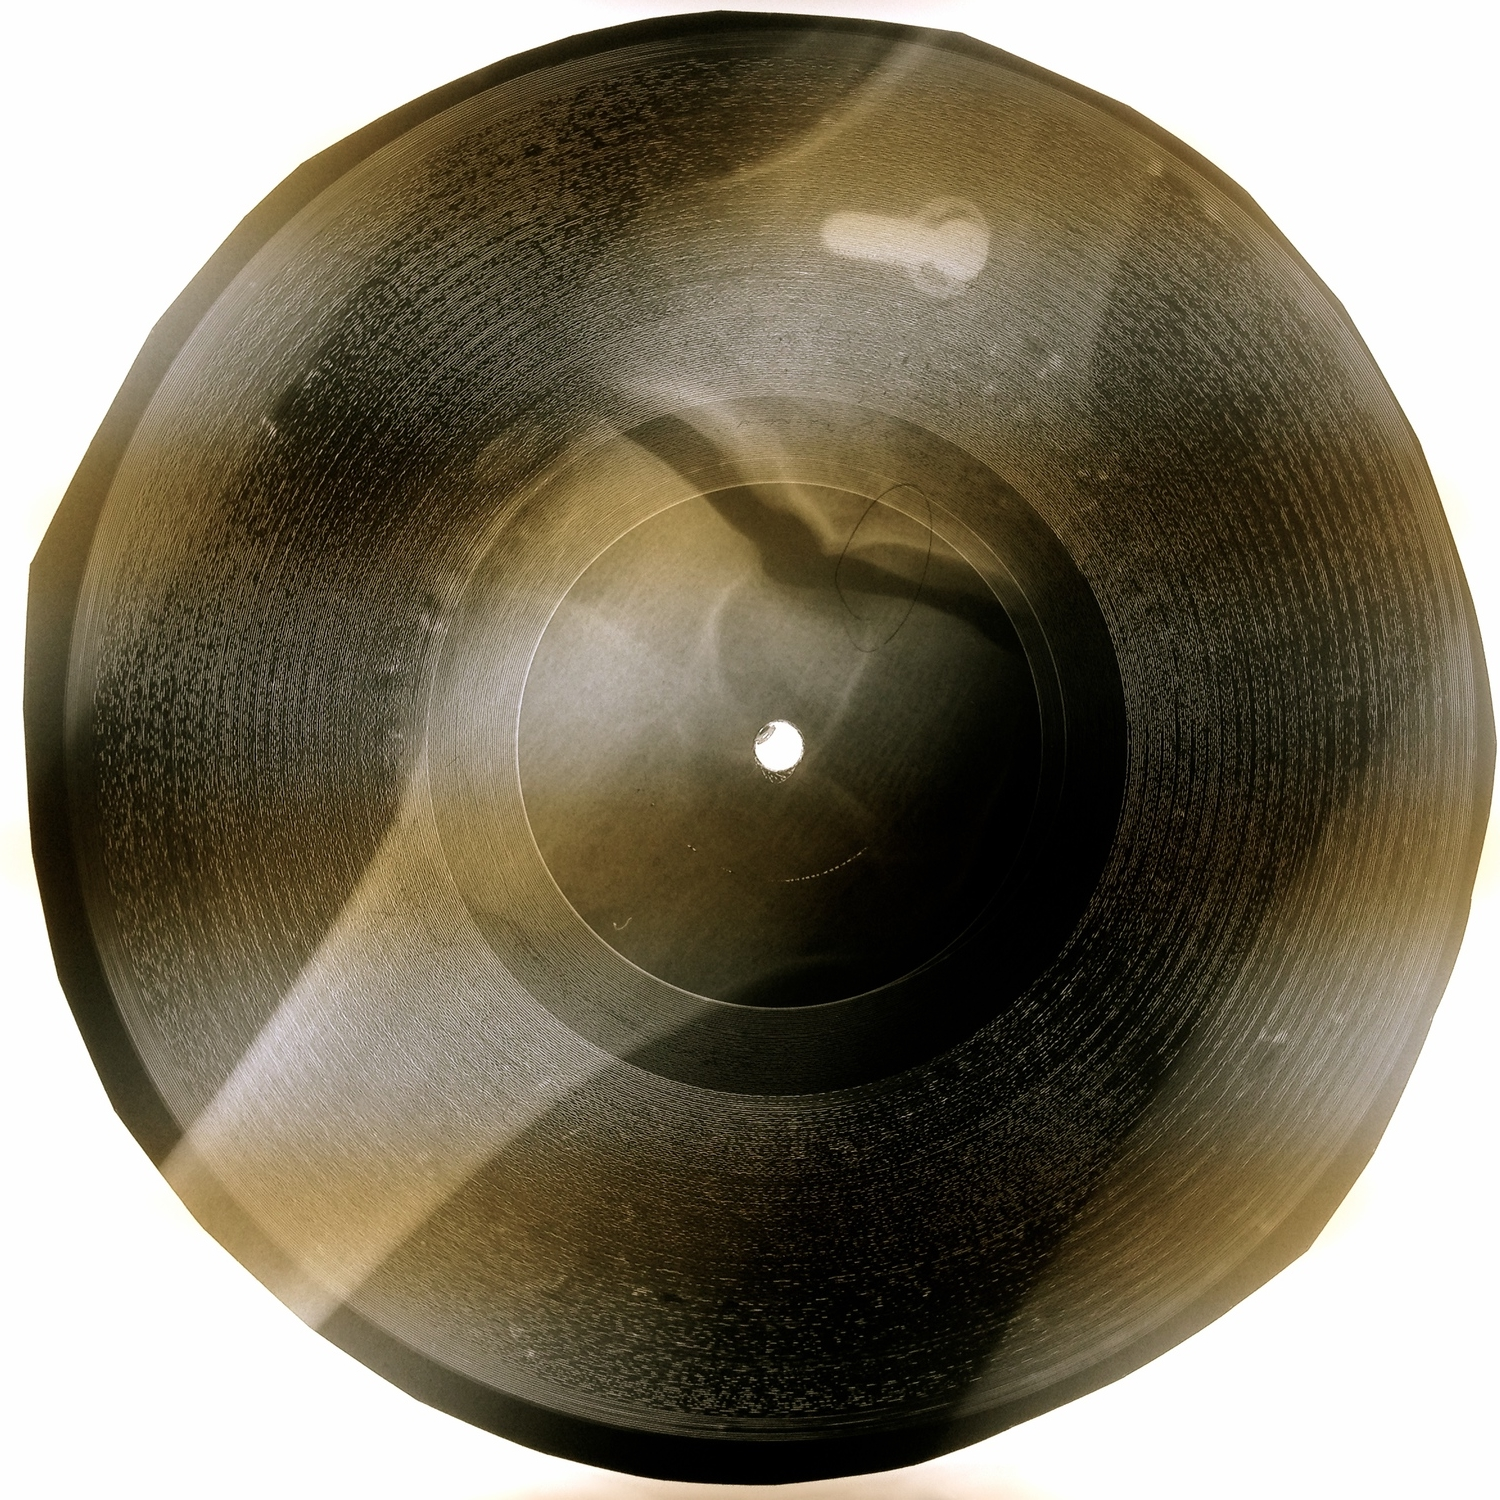 A new The Real Tuesday Weld X-Ray Record